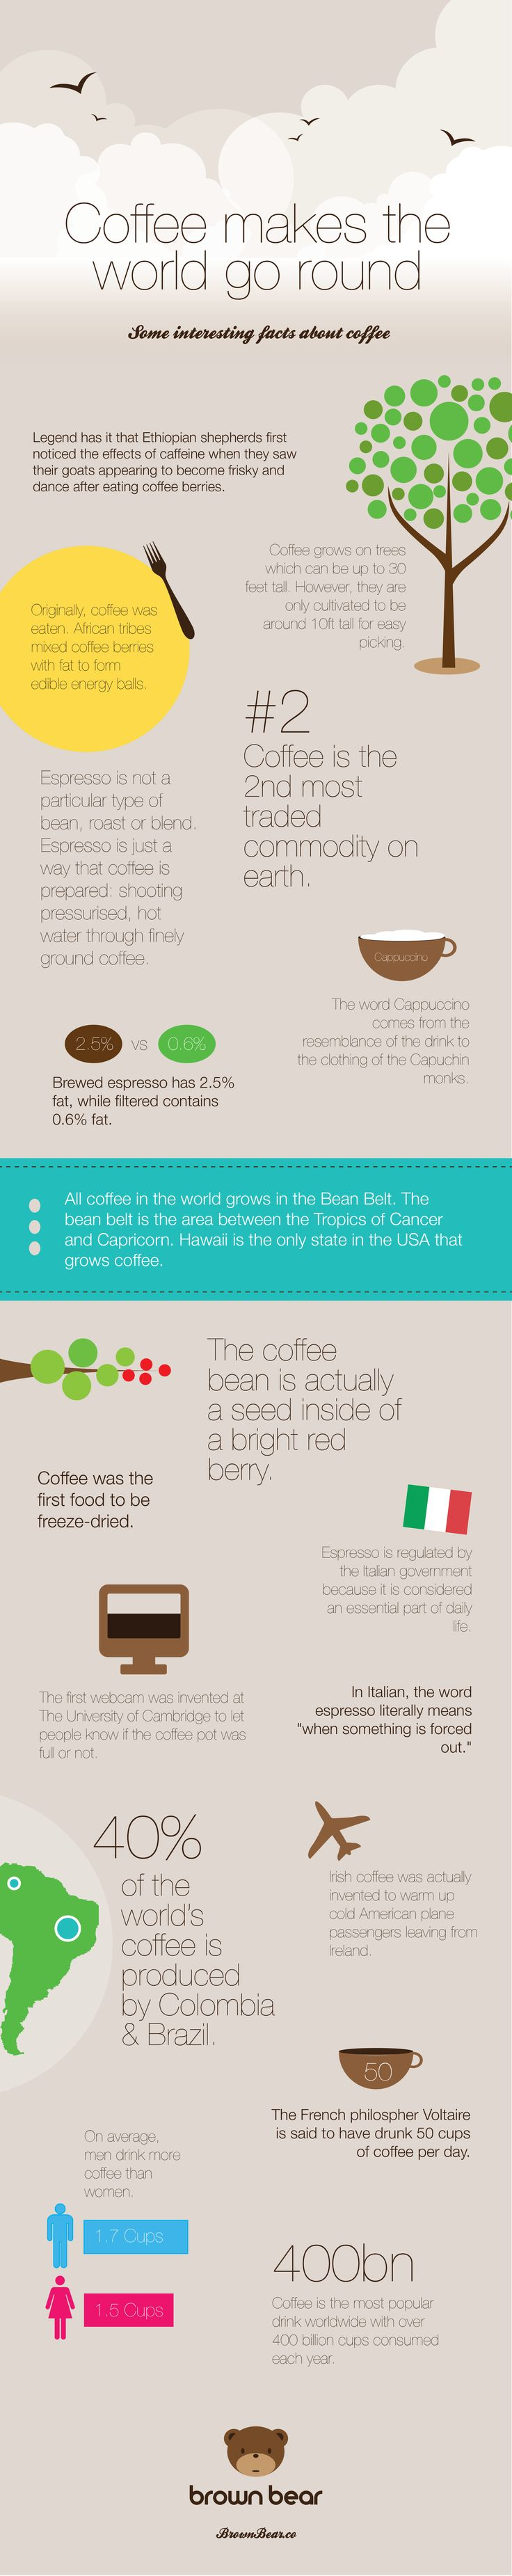 Coffee around the world infographic. 50 cups PER day?!?!